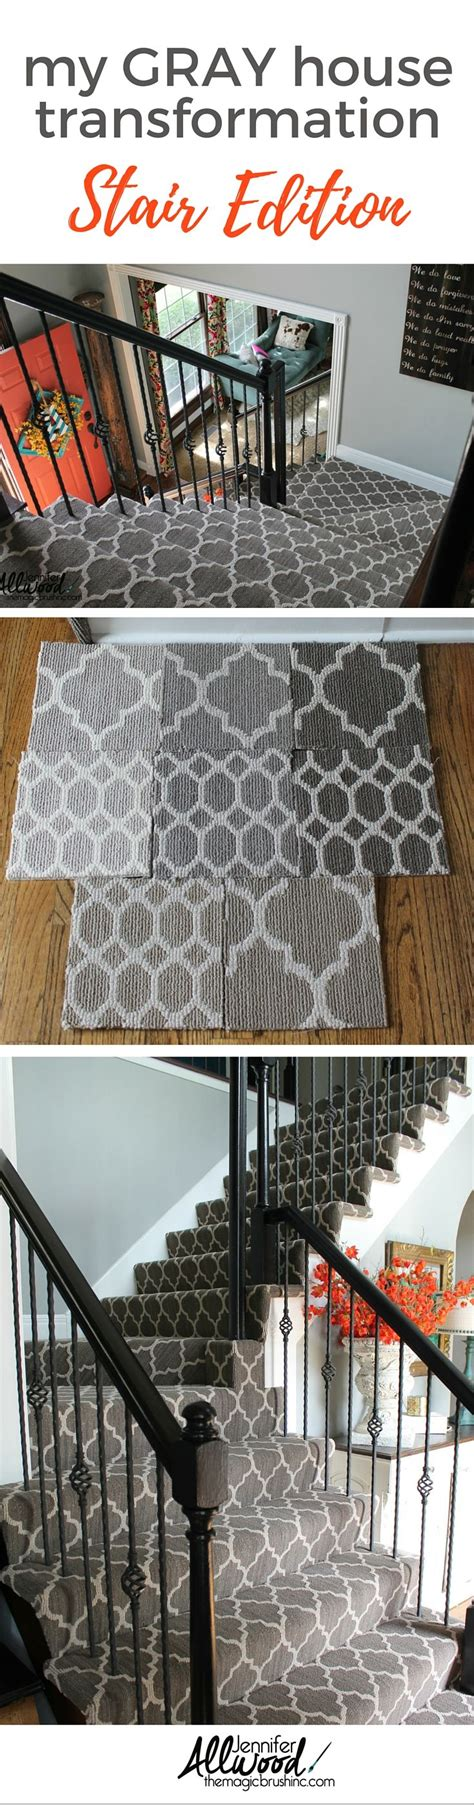 grey patterned stair carpet patterned stair carpet stair carpet staircase ideas and